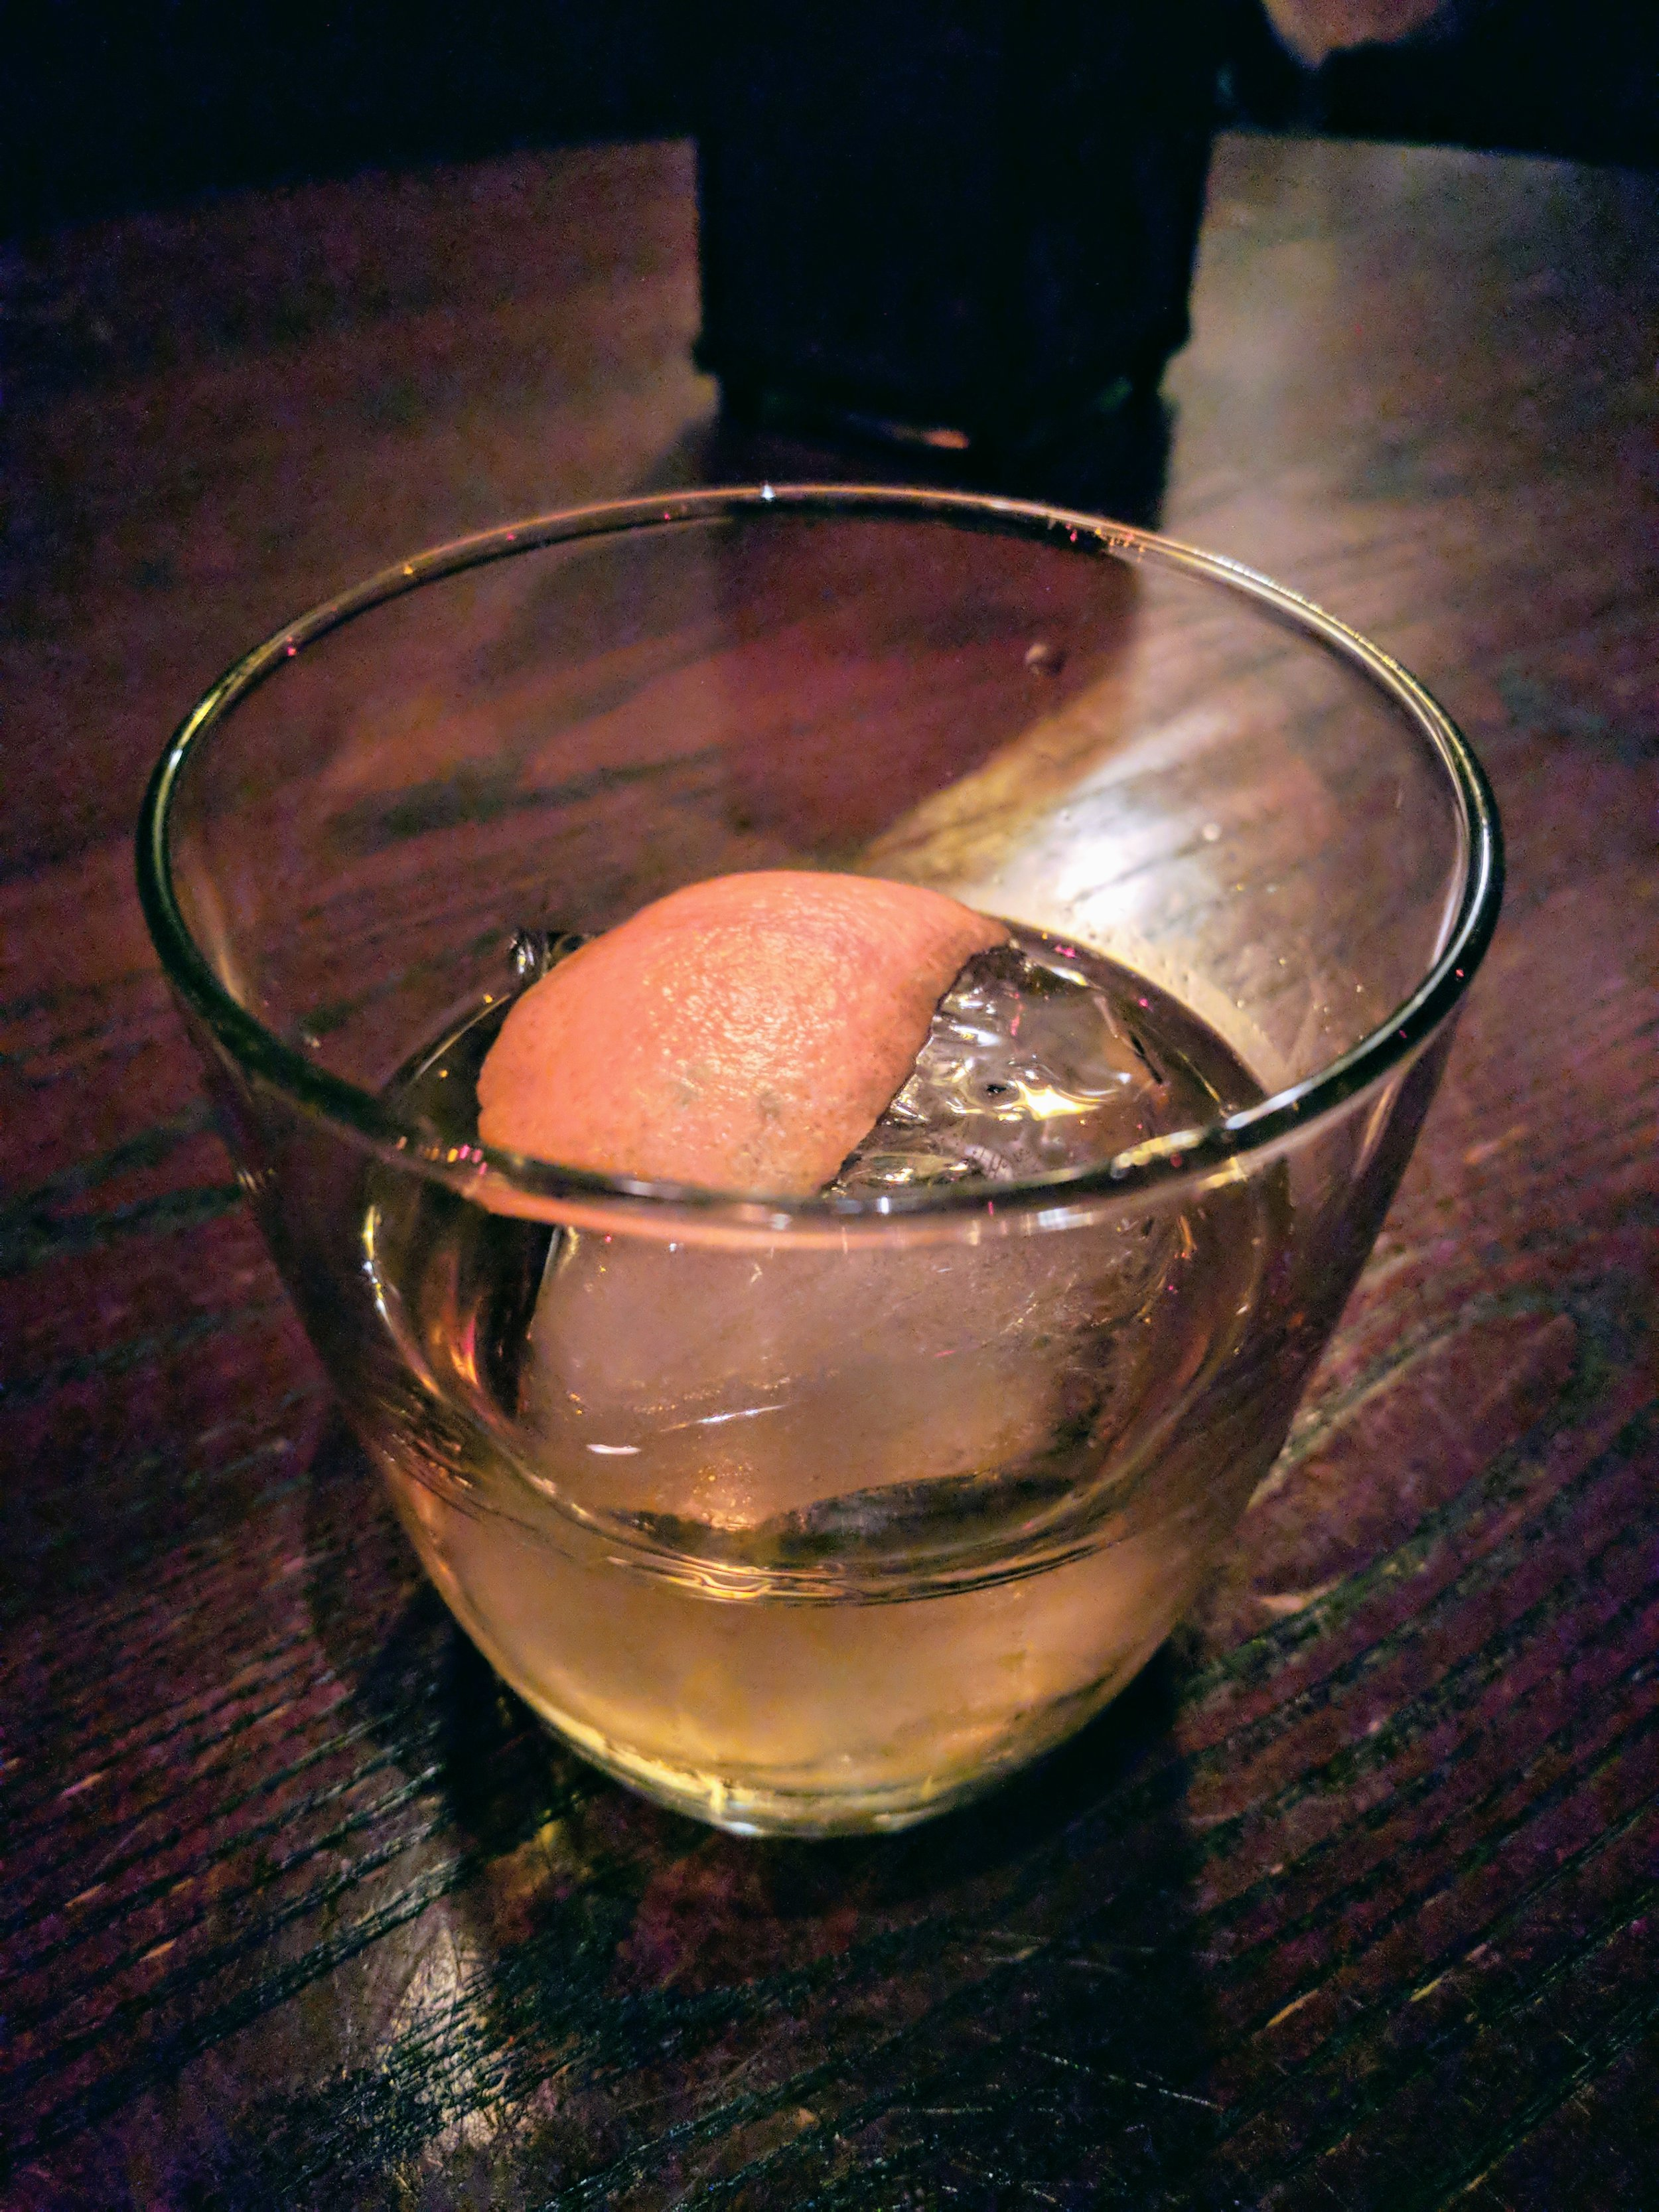 The best Old Fashioned I've ever had